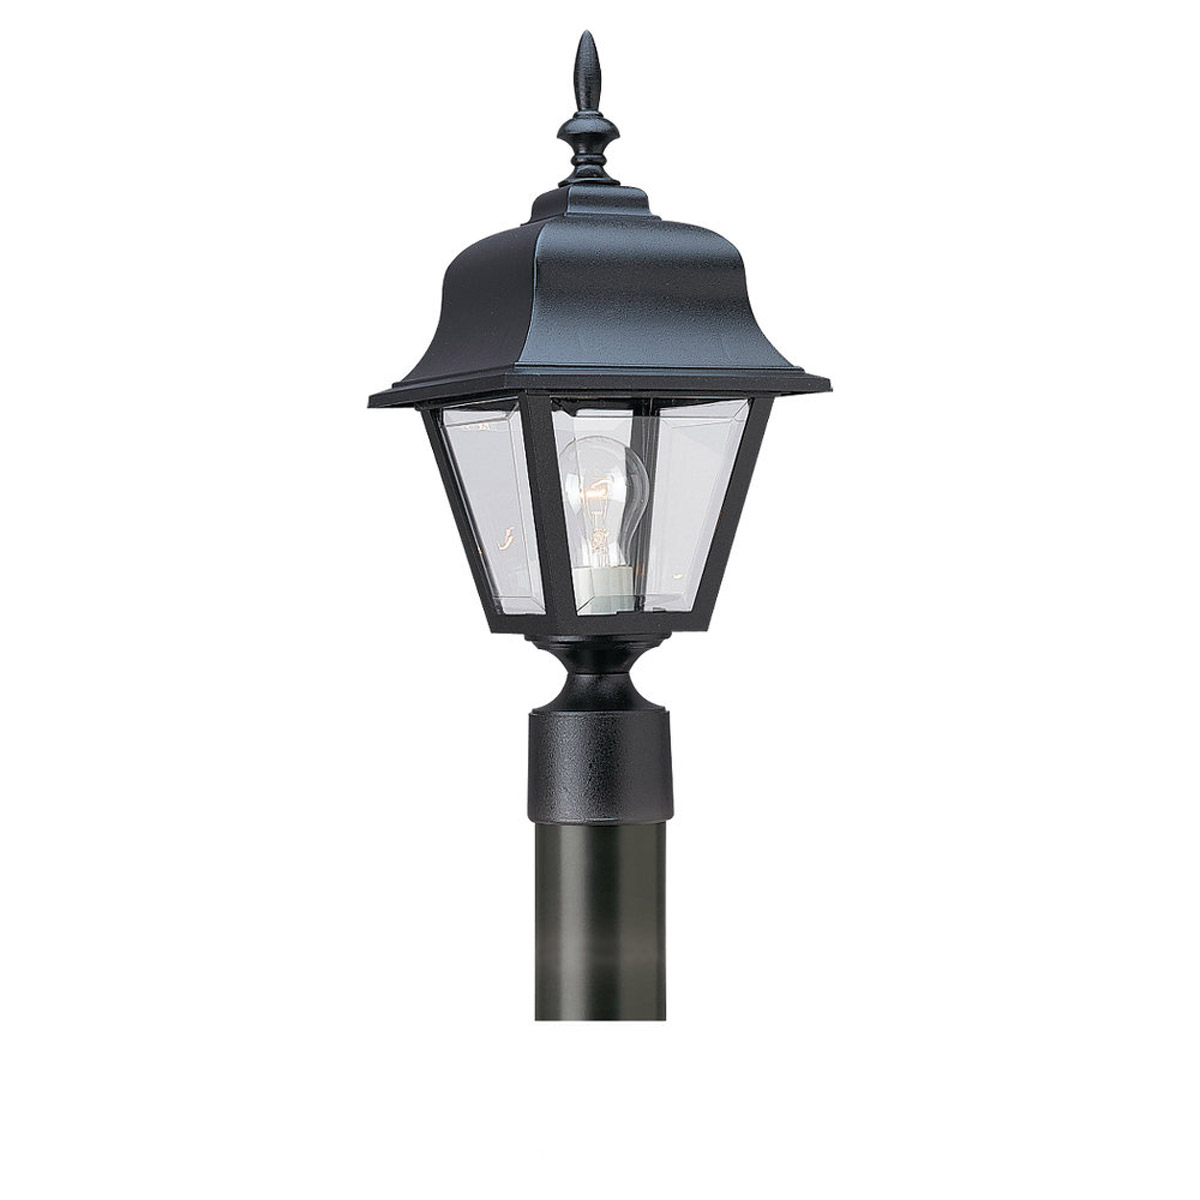 Sea Gull 8255-12 Painted Polycarbonate Lanterns 1 Light 16 inch Black Outdoor Post Lantern photo